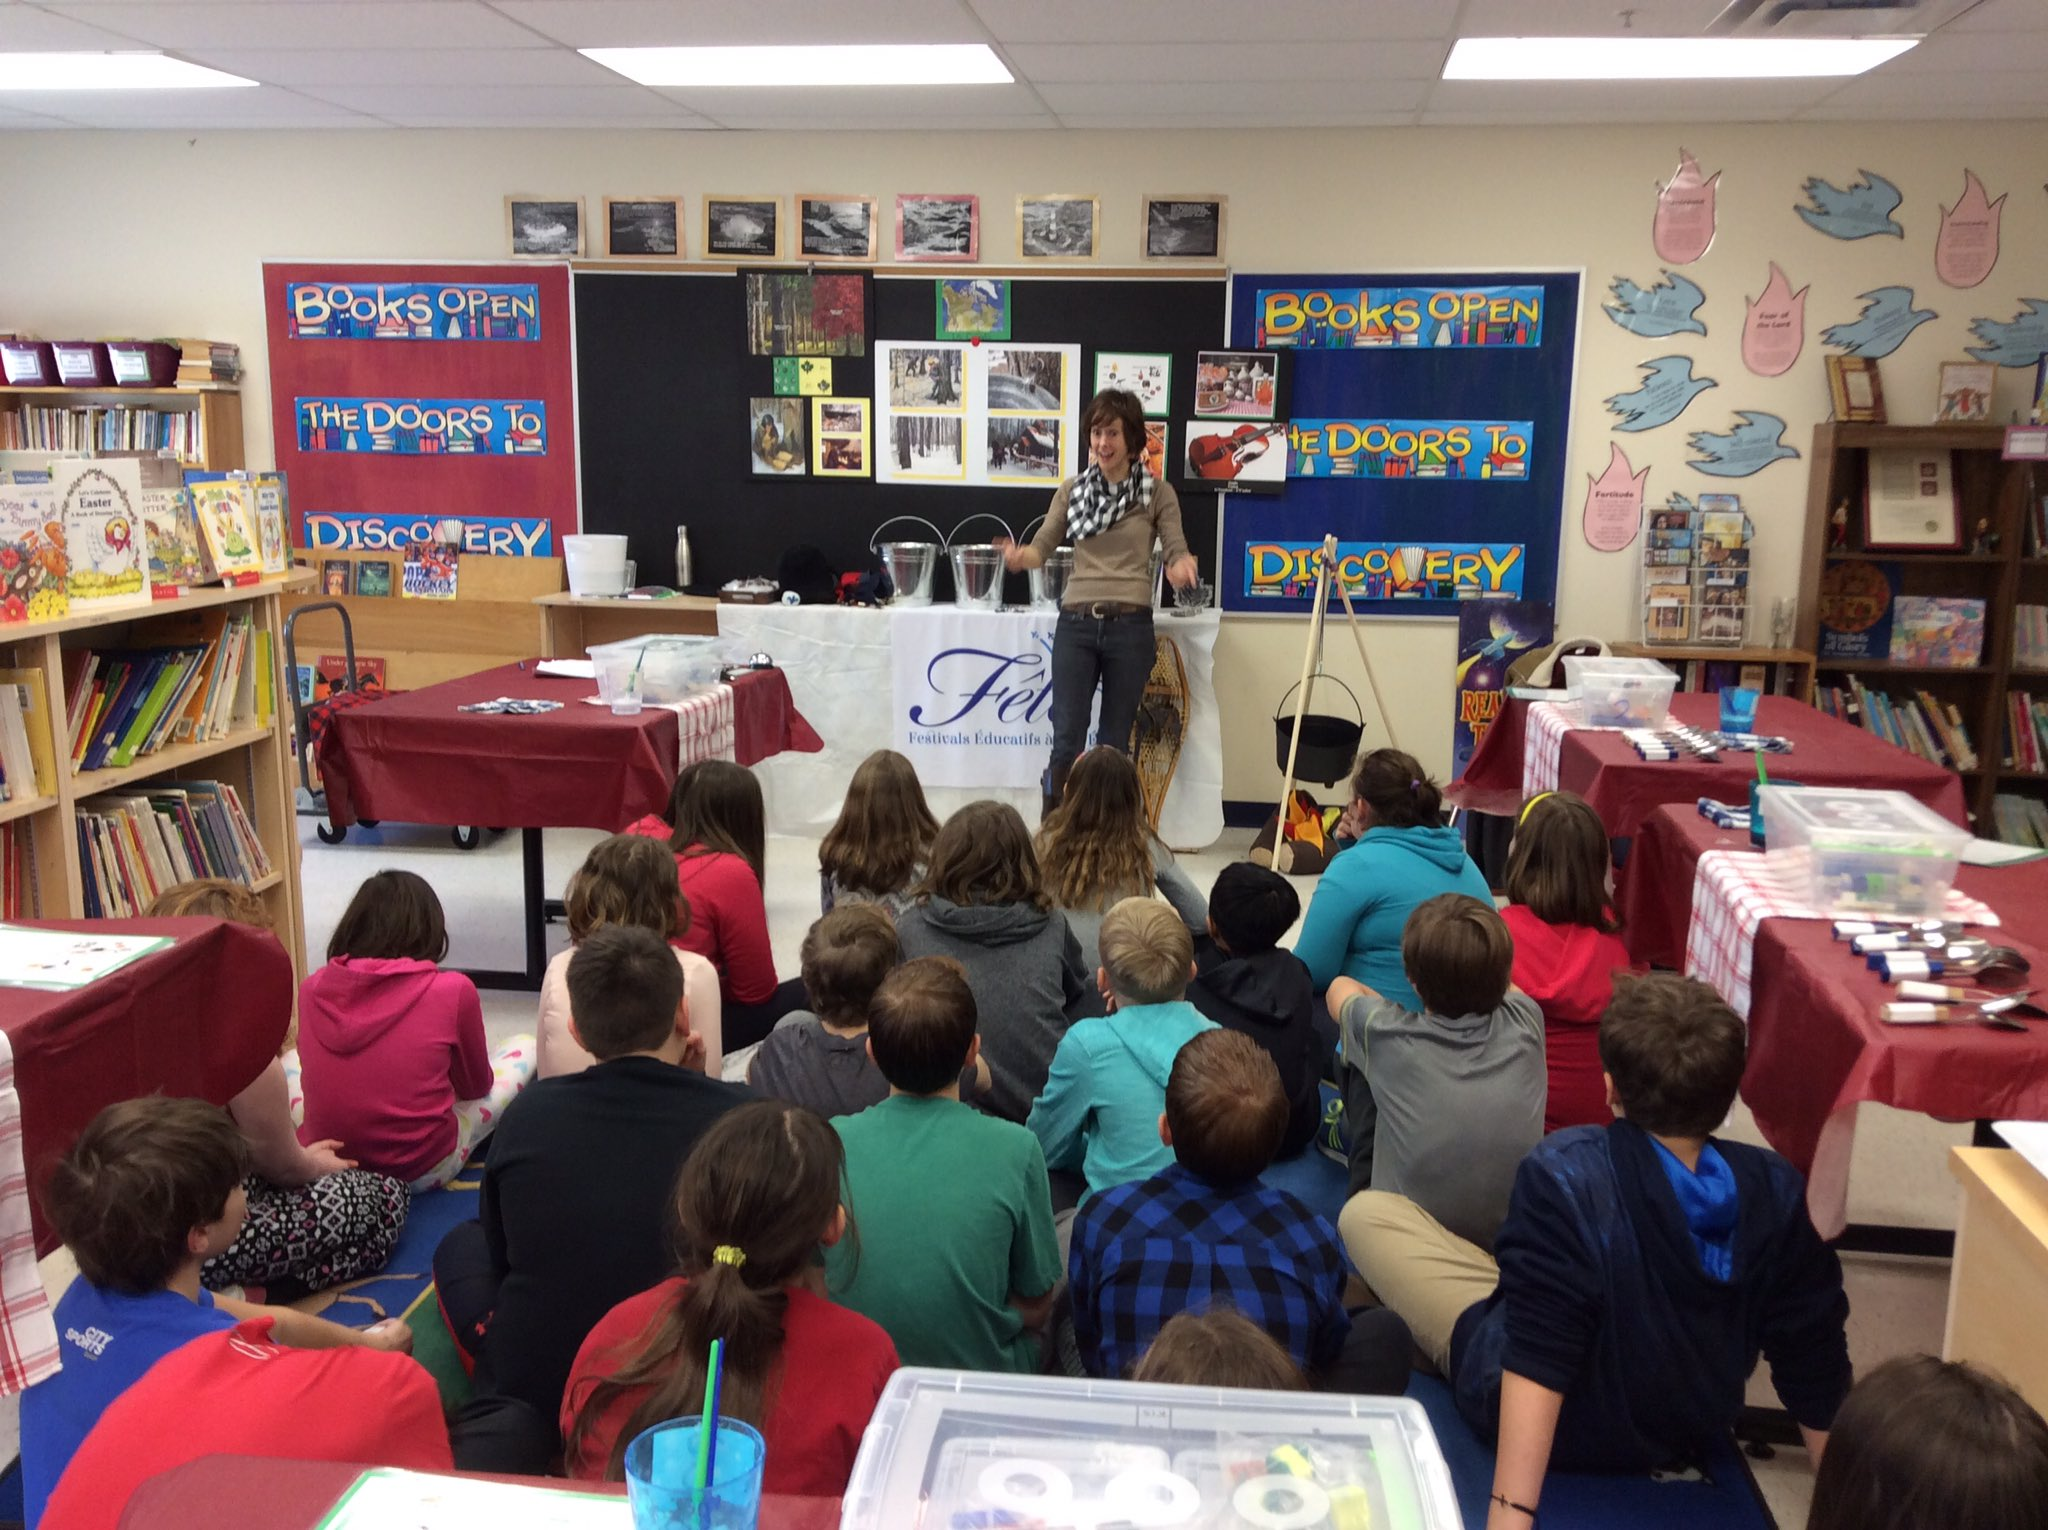 Grade 5&6 students enjoy a Maple Syrup Festival with Laura Tripp! Thank you for an educational French experience. https://t.co/mXcr6axWil